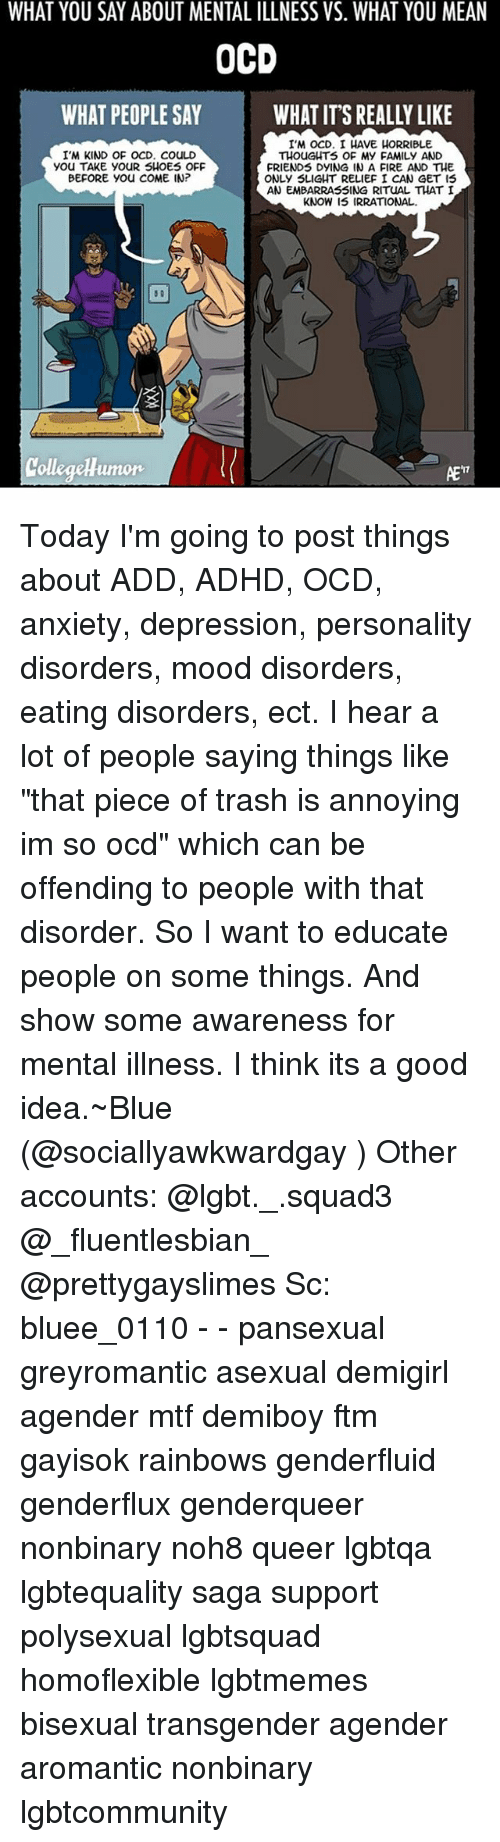 """relief: WHAT YOU SAY ABOUT MENTAL ILLNESS VS. WHAT YOU MEAN  OCD  WHAT PEOPLE SAY  WHAT ITS REALLY LIKE  I'M ocD. I HAVE HORRIBLE  I'M KIND OF OCD. COULD  THOUGHTS OF My FAMILy AND  you TAKE YOUR SHOES OFF  FRIENDS DYING IN A FIRE AND THE  BEFORE you COME IN?  ONLy SLIGHT RELIEF I CAN GET IS  AN EMBARRASSING RITUAL THAT I  KNOW IS IRRATIONAL.  AE'7 Today I'm going to post things about ADD, ADHD, OCD, anxiety, depression, personality disorders, mood disorders, eating disorders, ect. I hear a lot of people saying things like """"that piece of trash is annoying im so ocd"""" which can be offending to people with that disorder. So I want to educate people on some things. And show some awareness for mental illness. I think its a good idea.~Blue (@sociallyawkwardgay ) Other accounts: @lgbt._.squad3 @_fluentlesbian_ @prettygayslimes Sc: bluee_0110 - - pansexual greyromantic asexual demigirl agender mtf demiboy ftm gayisok rainbows genderfluid genderflux genderqueer nonbinary noh8 queer lgbtqa lgbtequality saga support polysexual lgbtsquad homoflexible lgbtmemes bisexual transgender agender aromantic nonbinary lgbtcommunity"""